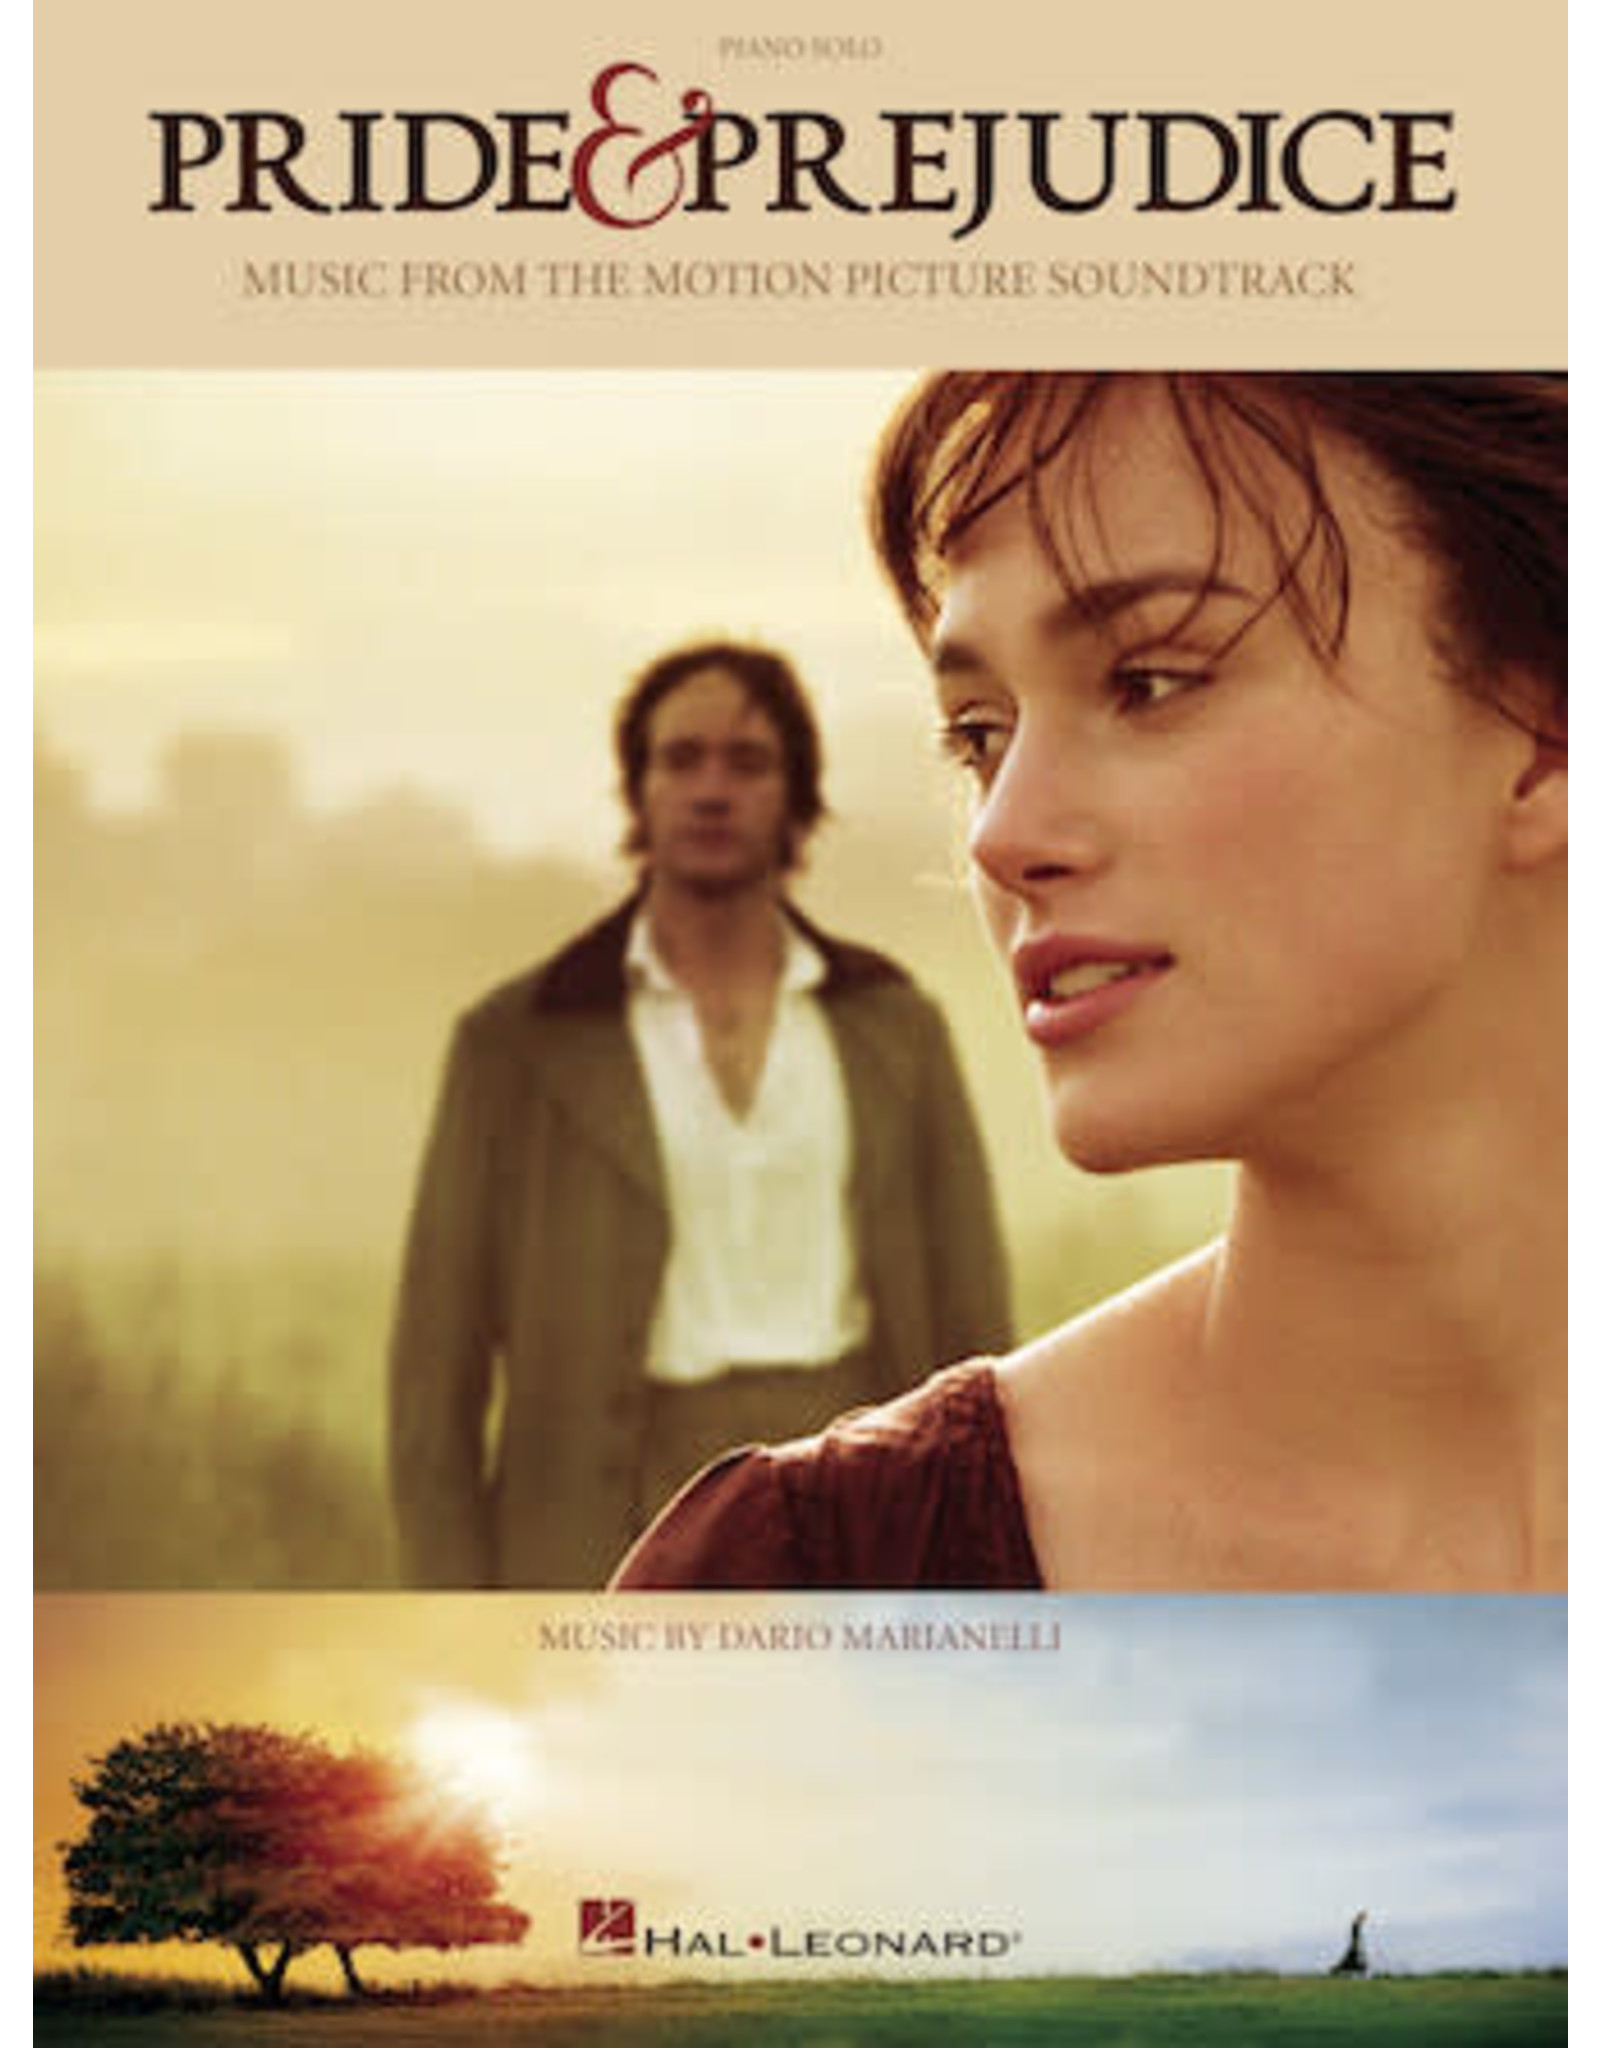 Hal Leonard Pride and Prejudice - Music from the Motion Picture